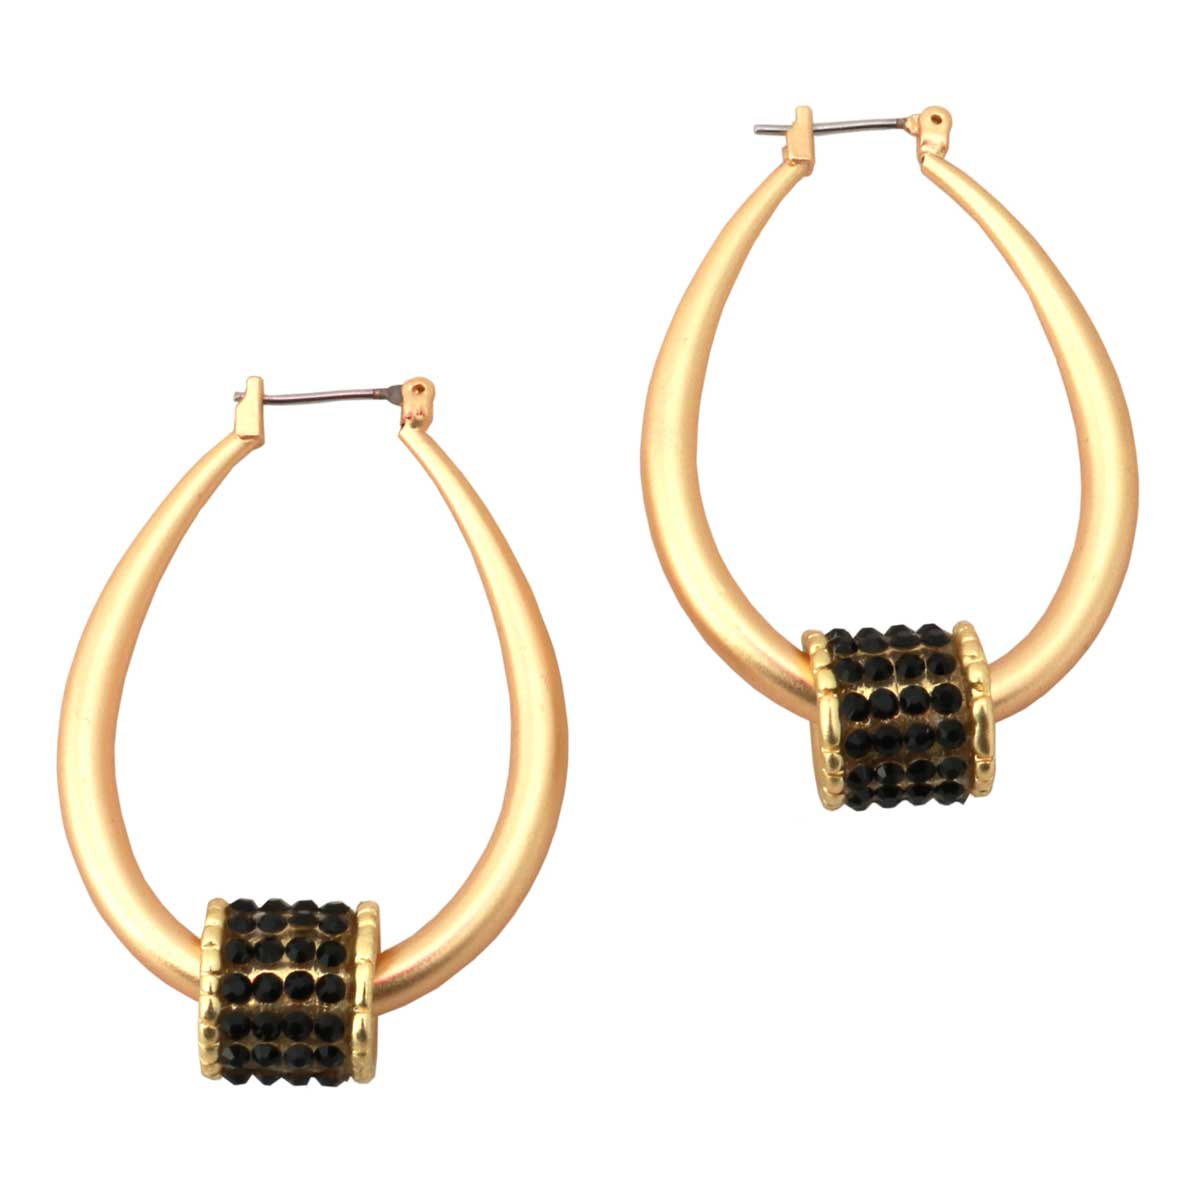 "Brushed Gold 1.75"" Hoop Earrings with Black Barrel Bead"